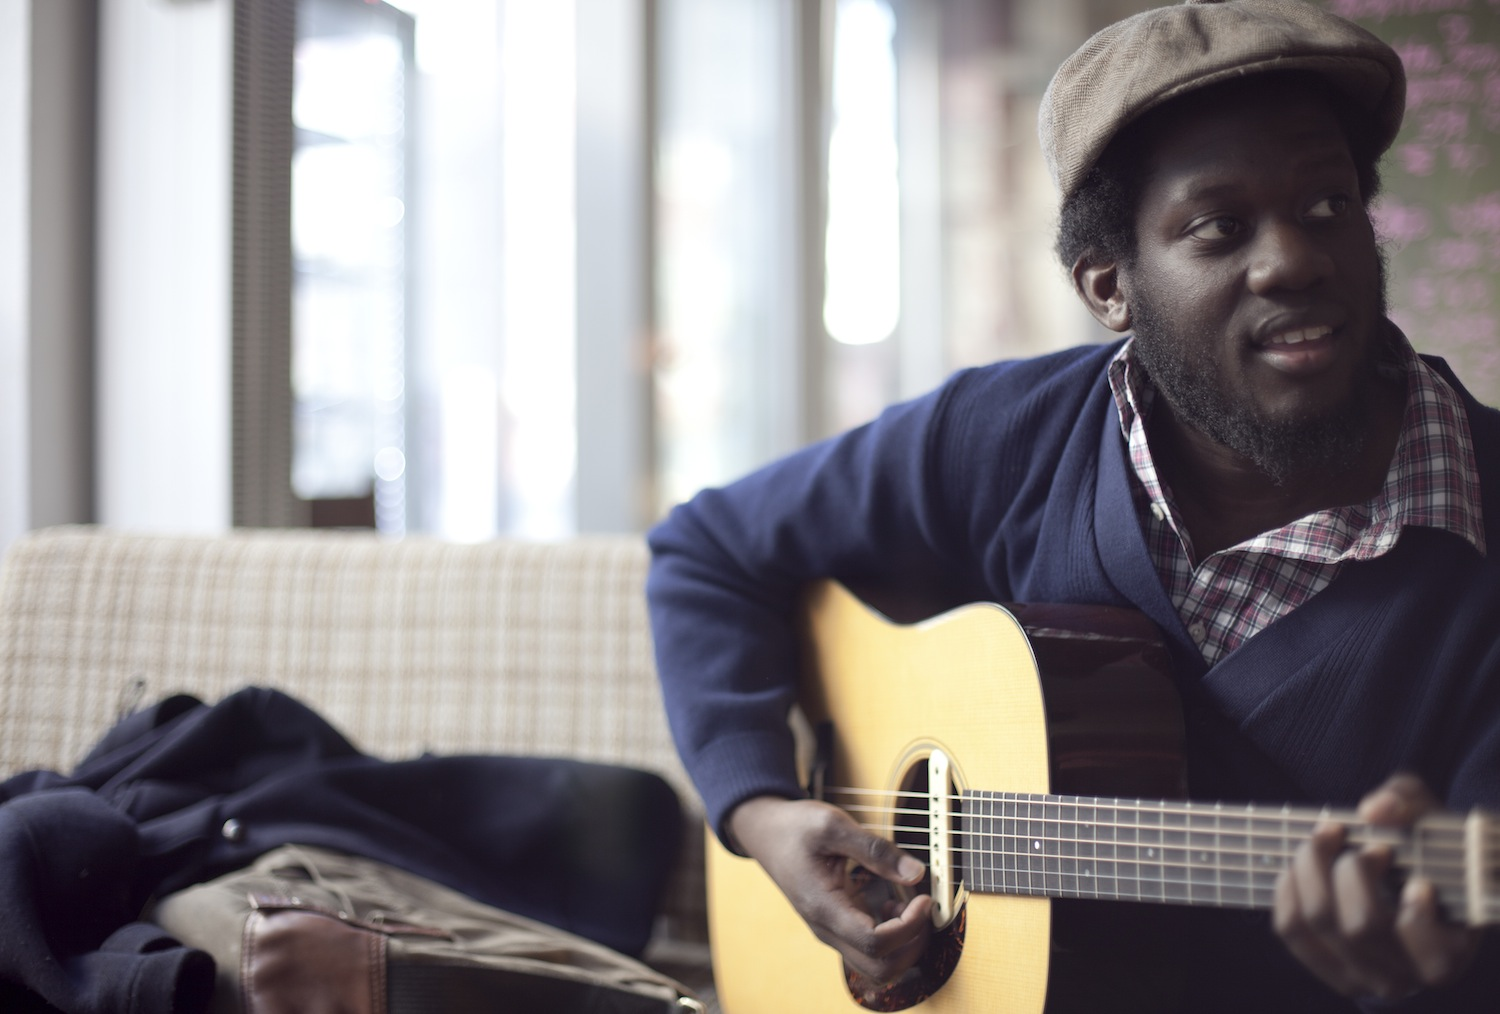 Micheal Kiwanuka winning over hearts with his love and hate album